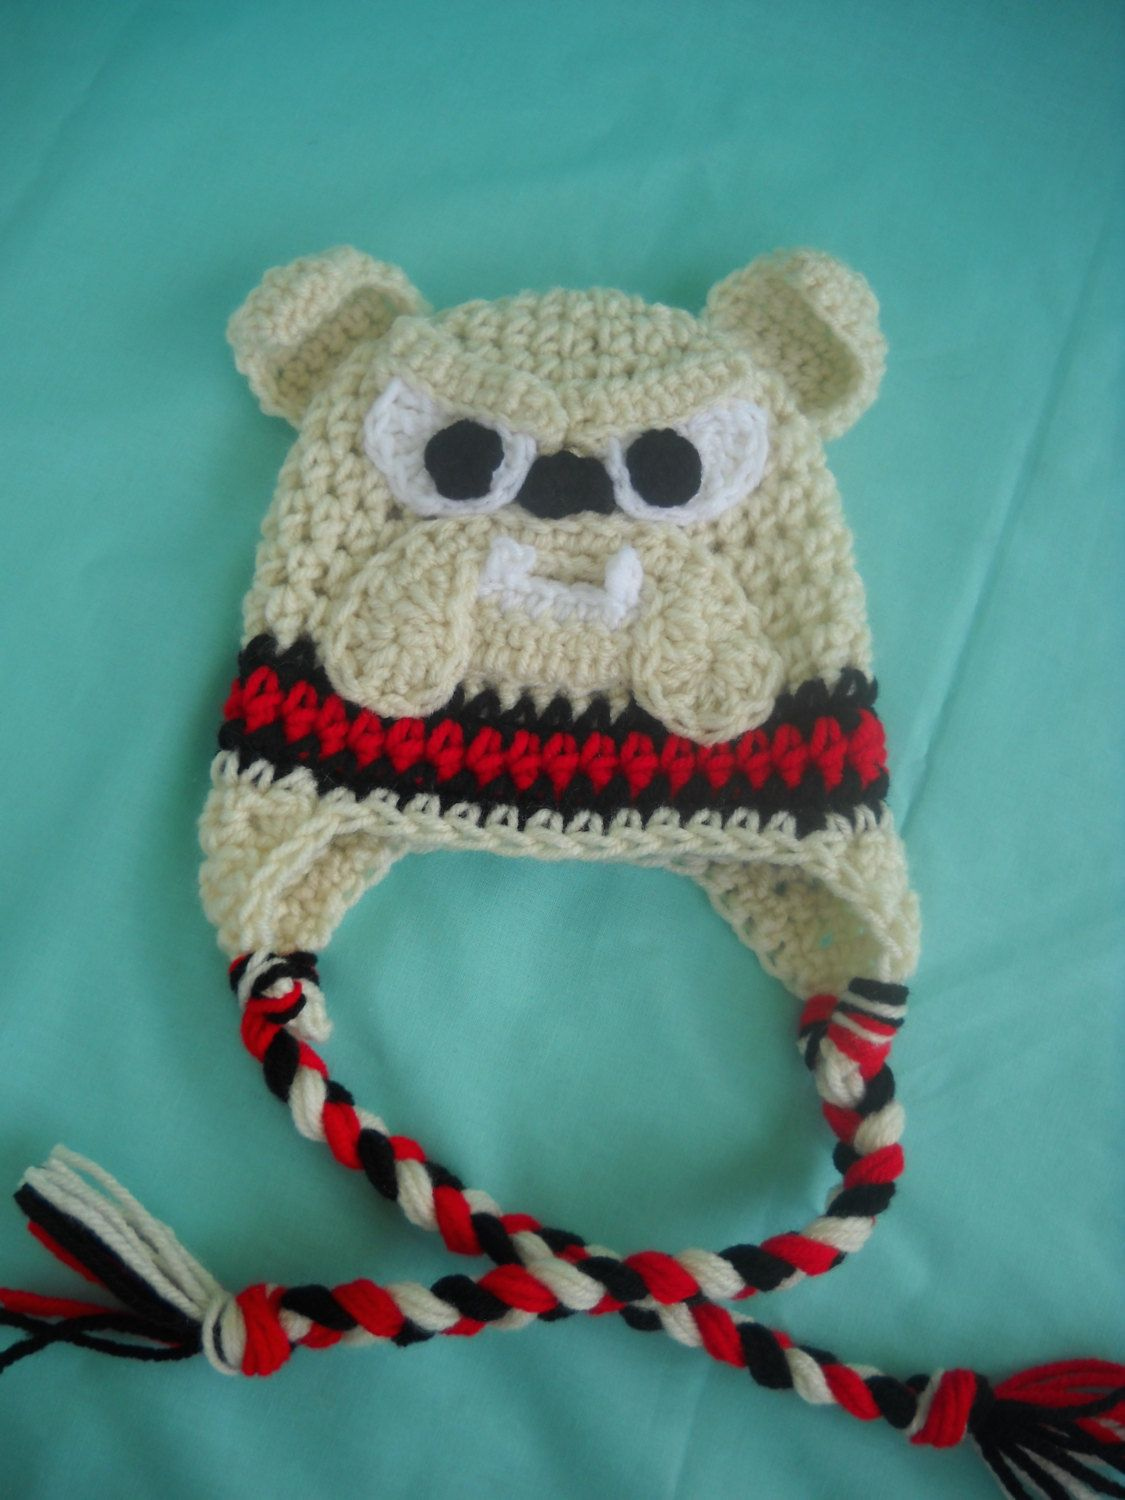 b2bc0728425 Georgia Bulldog Crochet Hat with Earflaps by KendalsCreationsSt ...